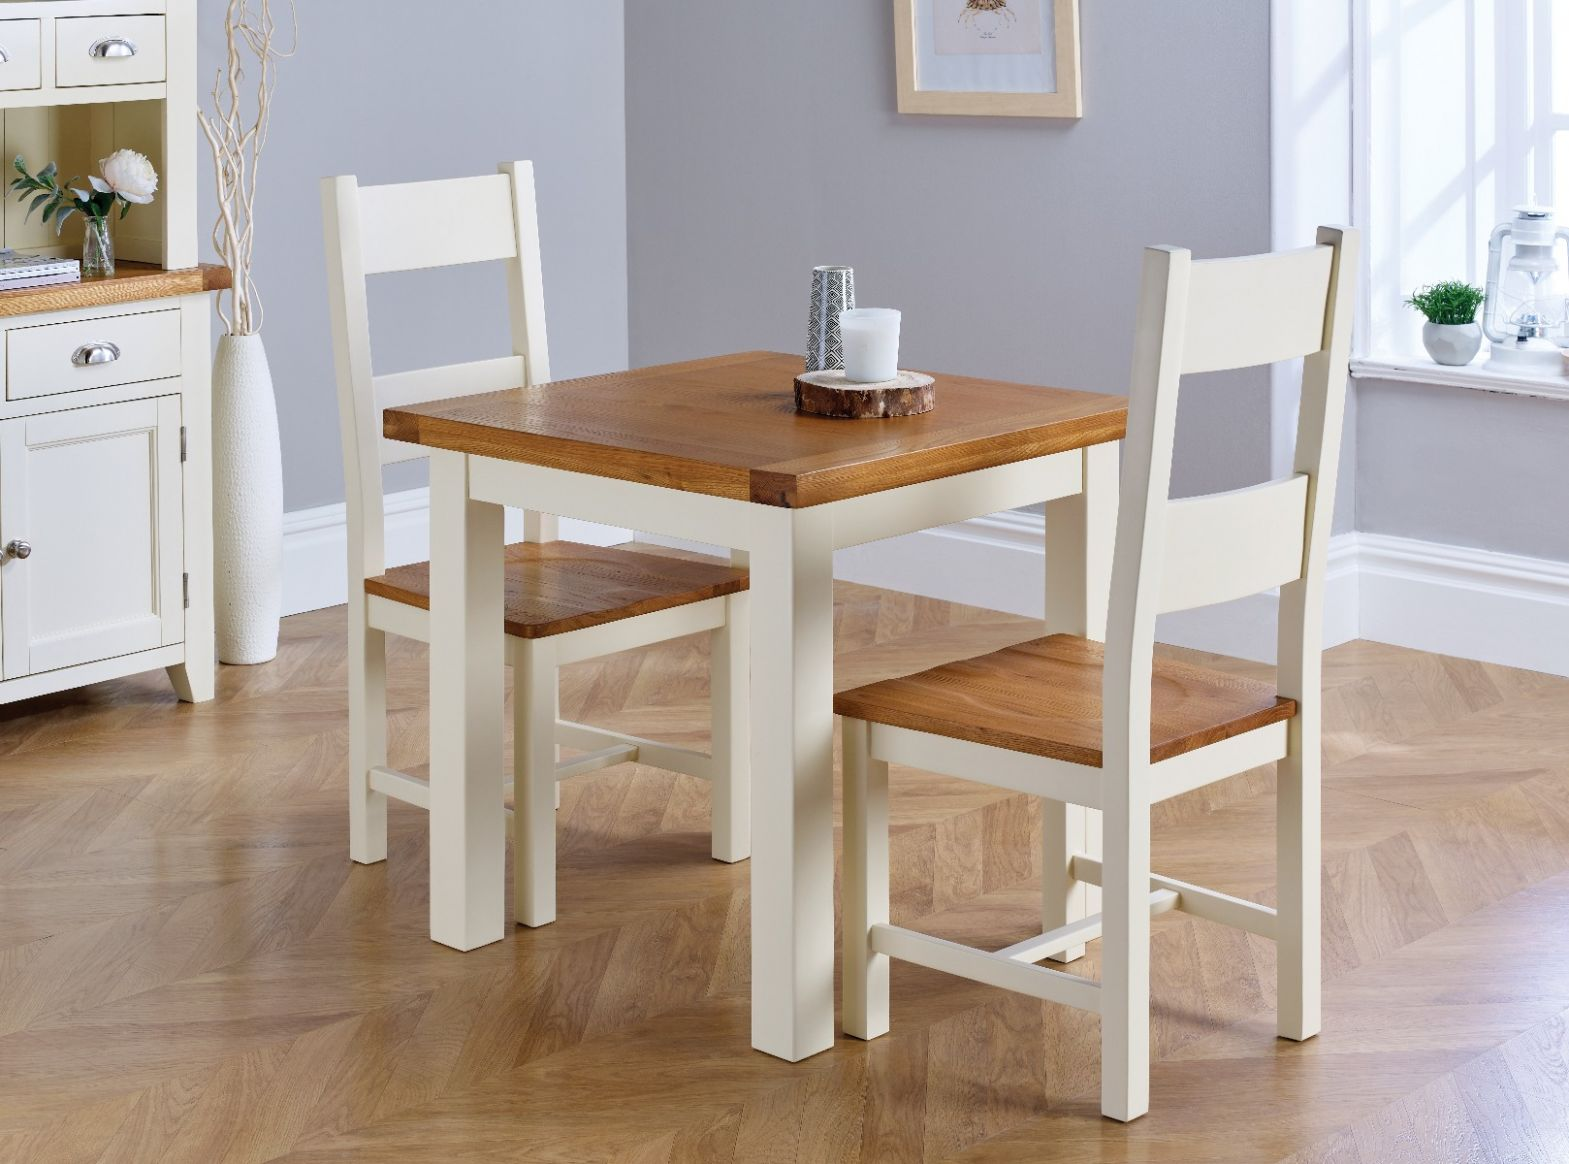 Country Oak Small 12cm Cream Painted Square Oak Dining Table / Desk -  SPRING SALE